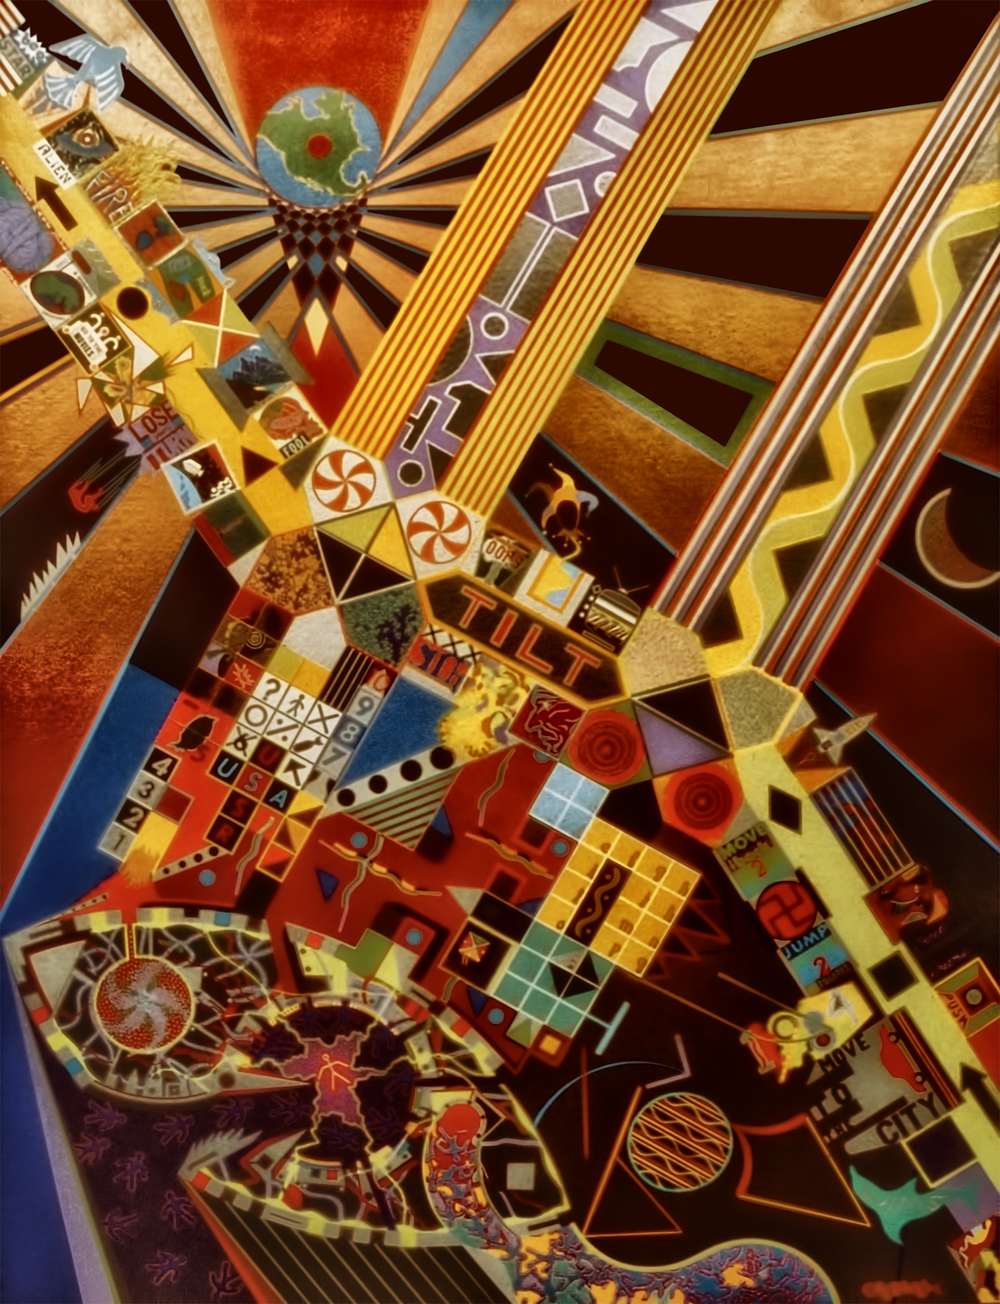 Tilt, 1983-1984, Acrylic on Canvas, 70 X 52 in.